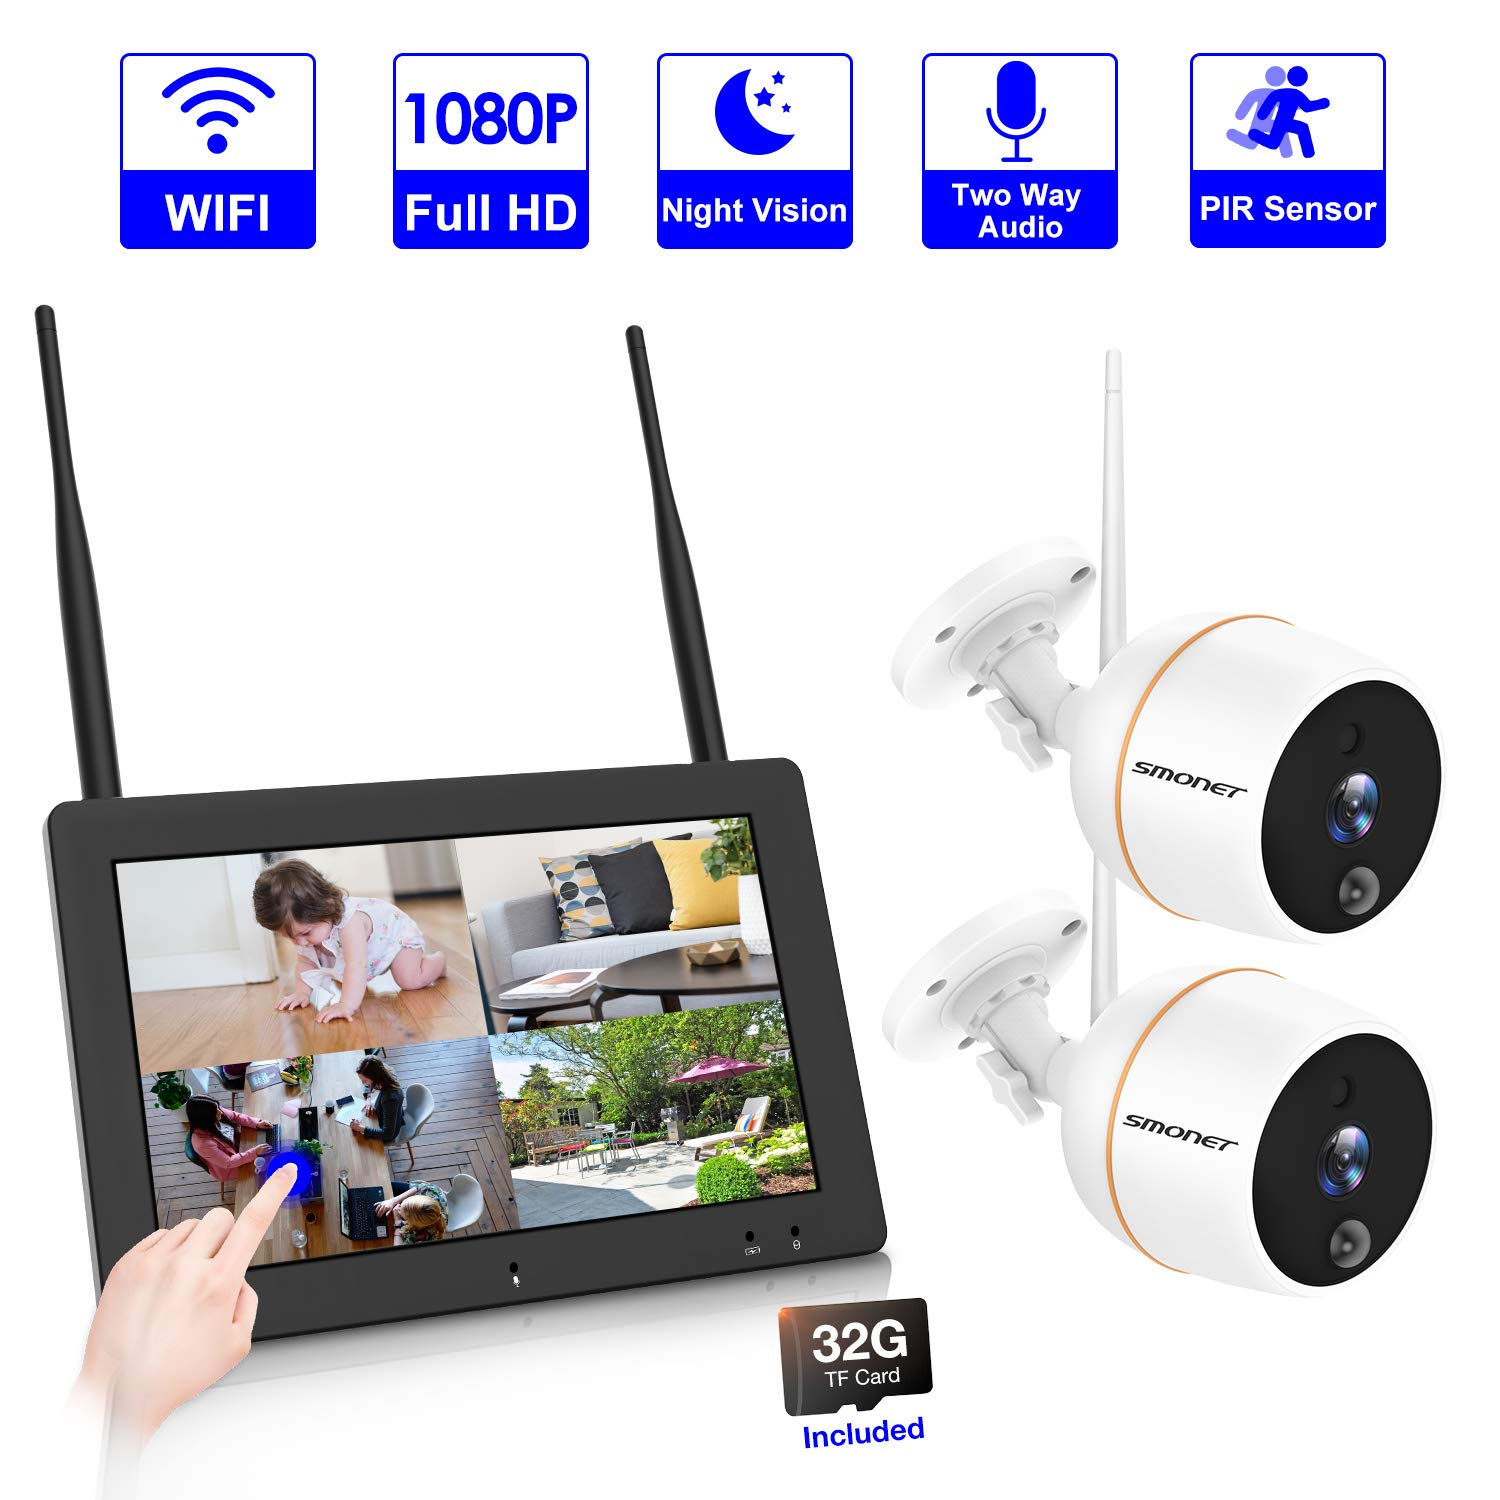 【PLUG&PLAY】4CH Wireless Security Camera System,SMONET 7'' Touchscreen NVR Monitor(32G TF Card Included) With 2PCS 1080P WiFi Outdoor Security Camera,Two-Way Audio,PIR Motion Detection,Easy Remote View